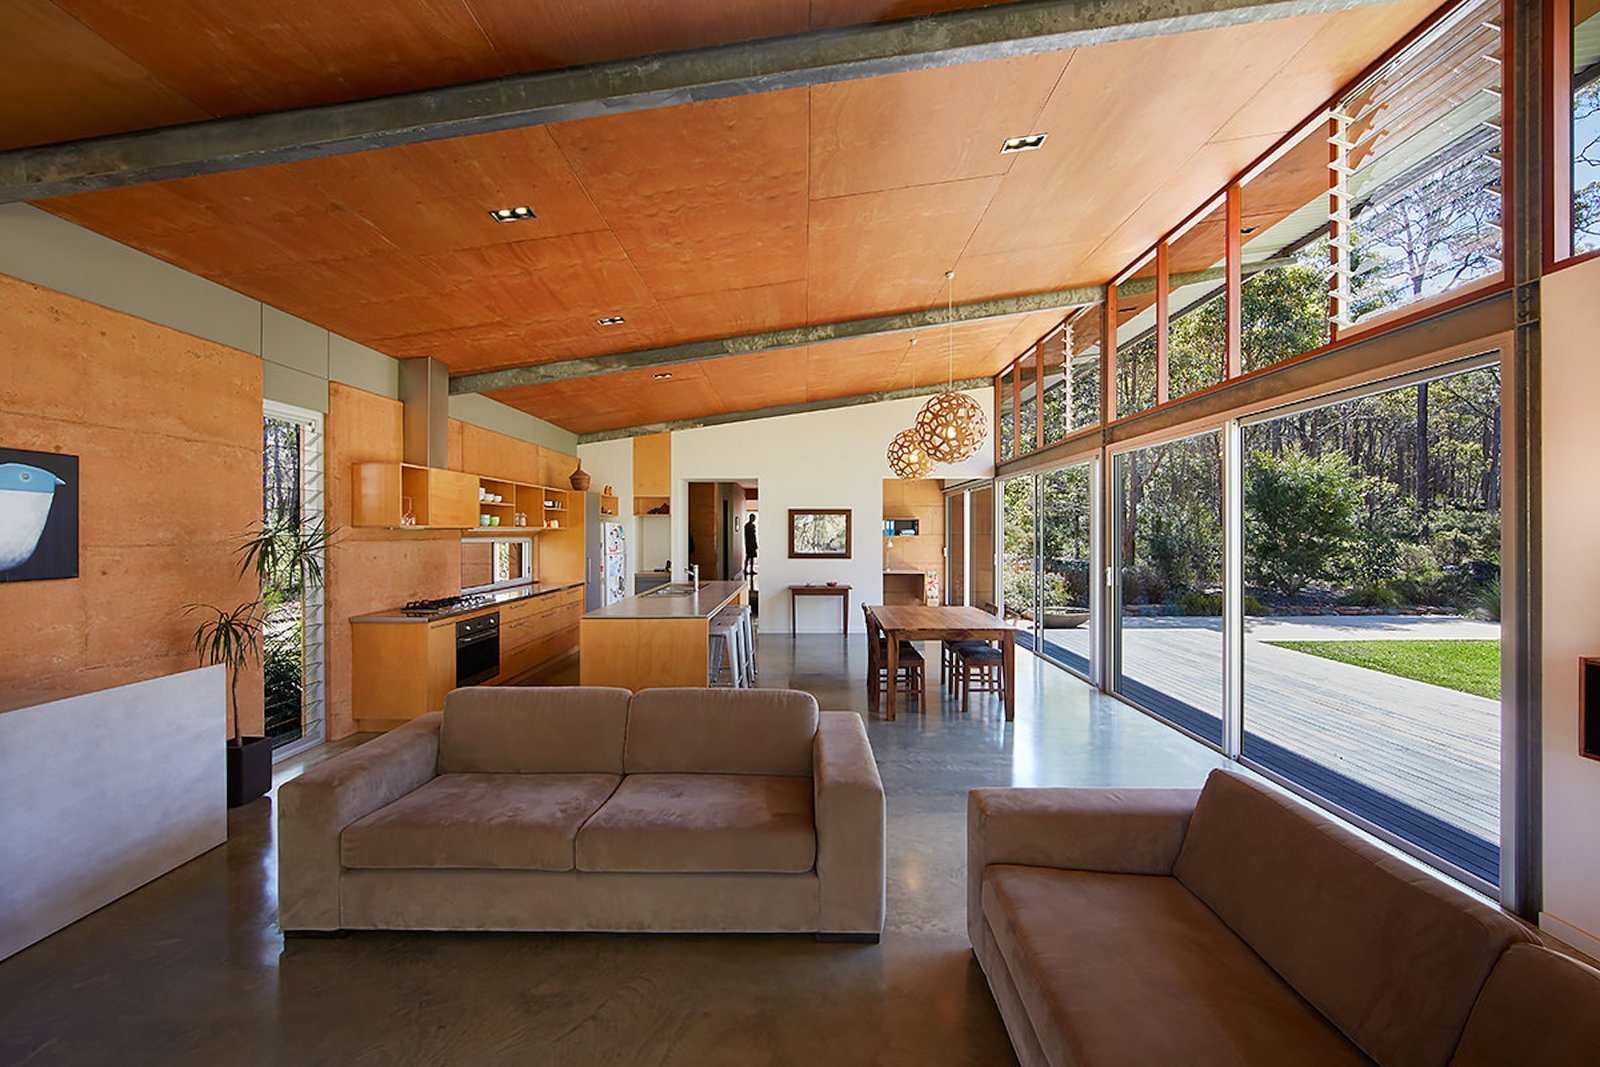 Bush House living room with rammed earth walls